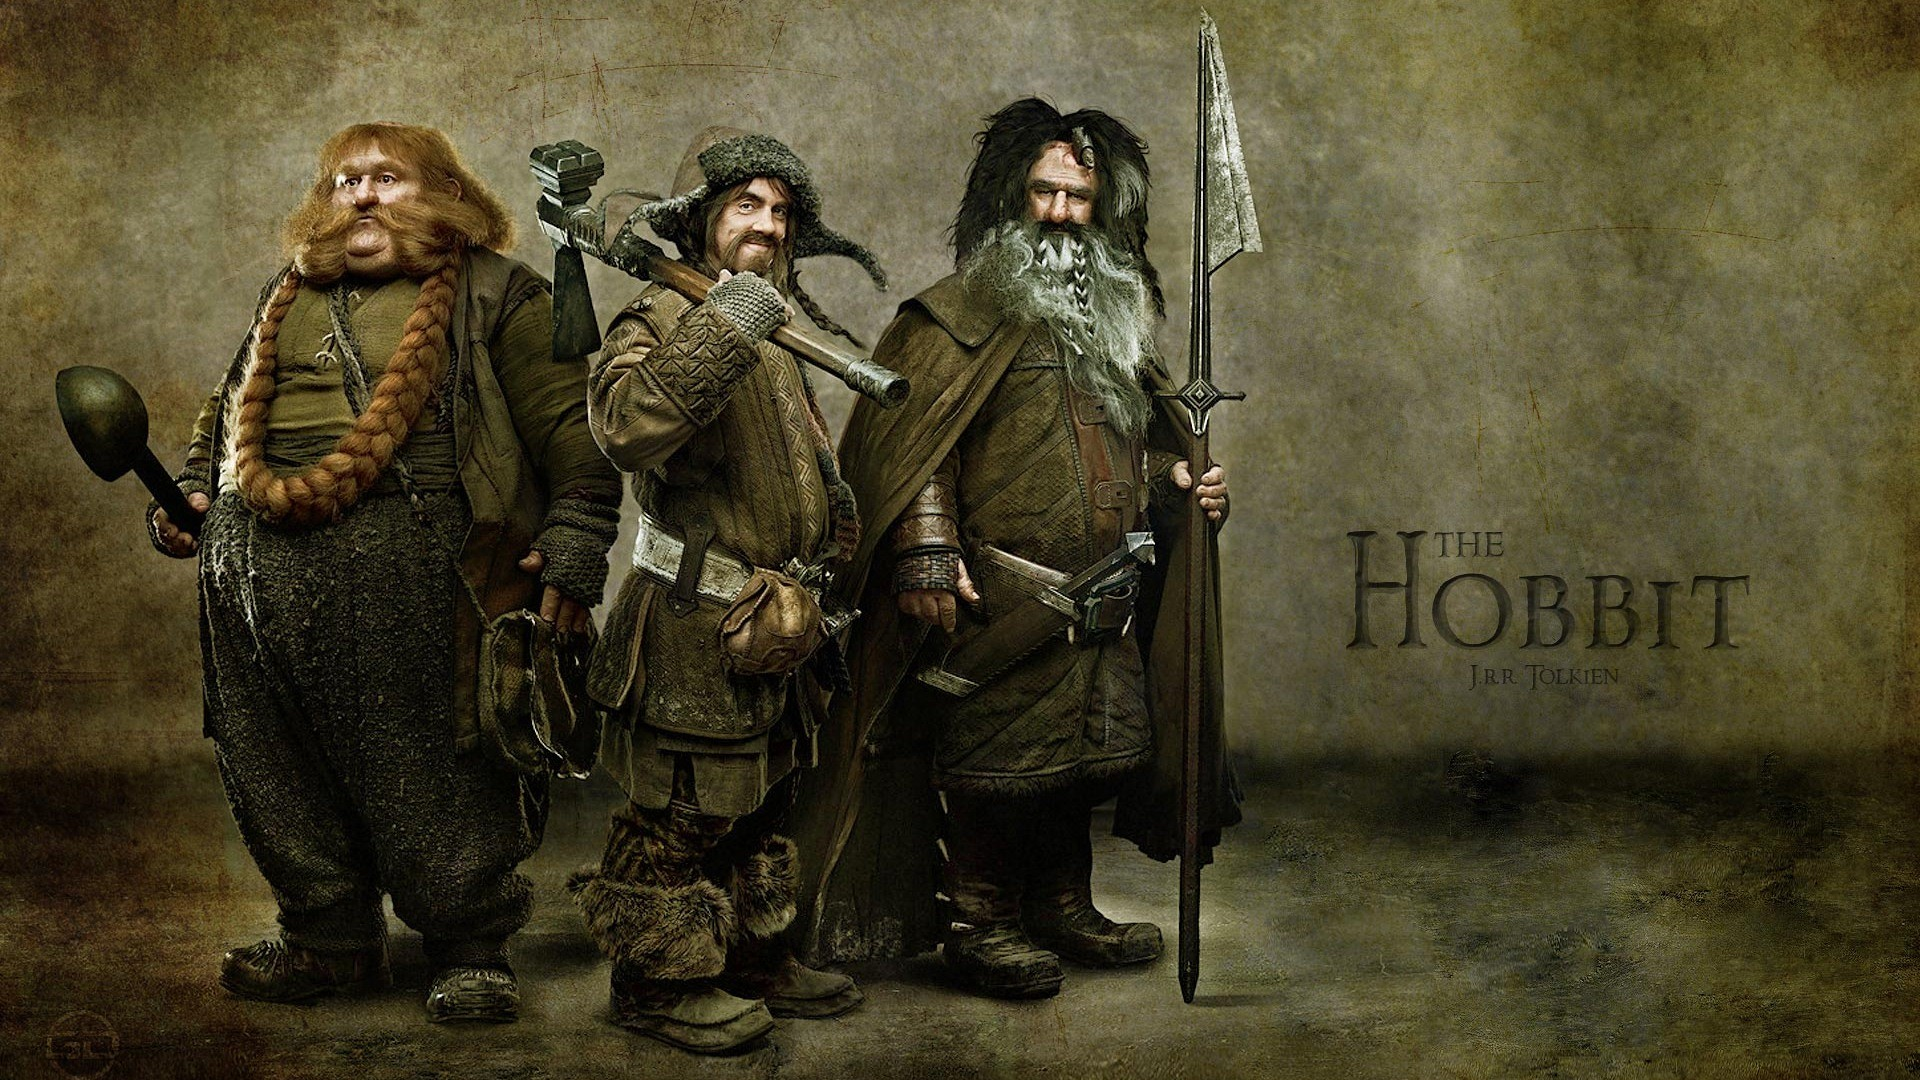 The Hobbit: An Unexpected Journey HD wallpapers #5 – 1920×1080.